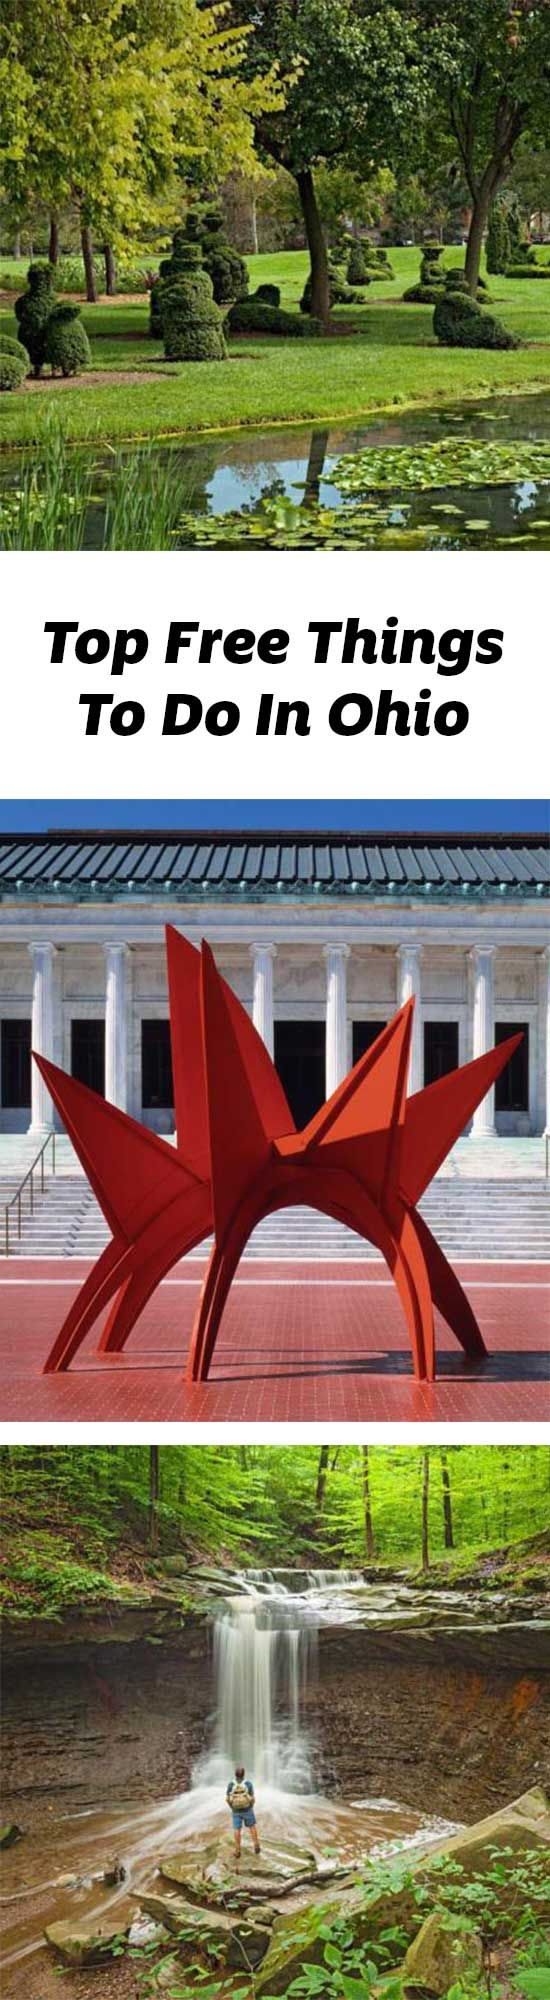 Art museums, state parks and the state capitol are just a few free things to do in Ohio